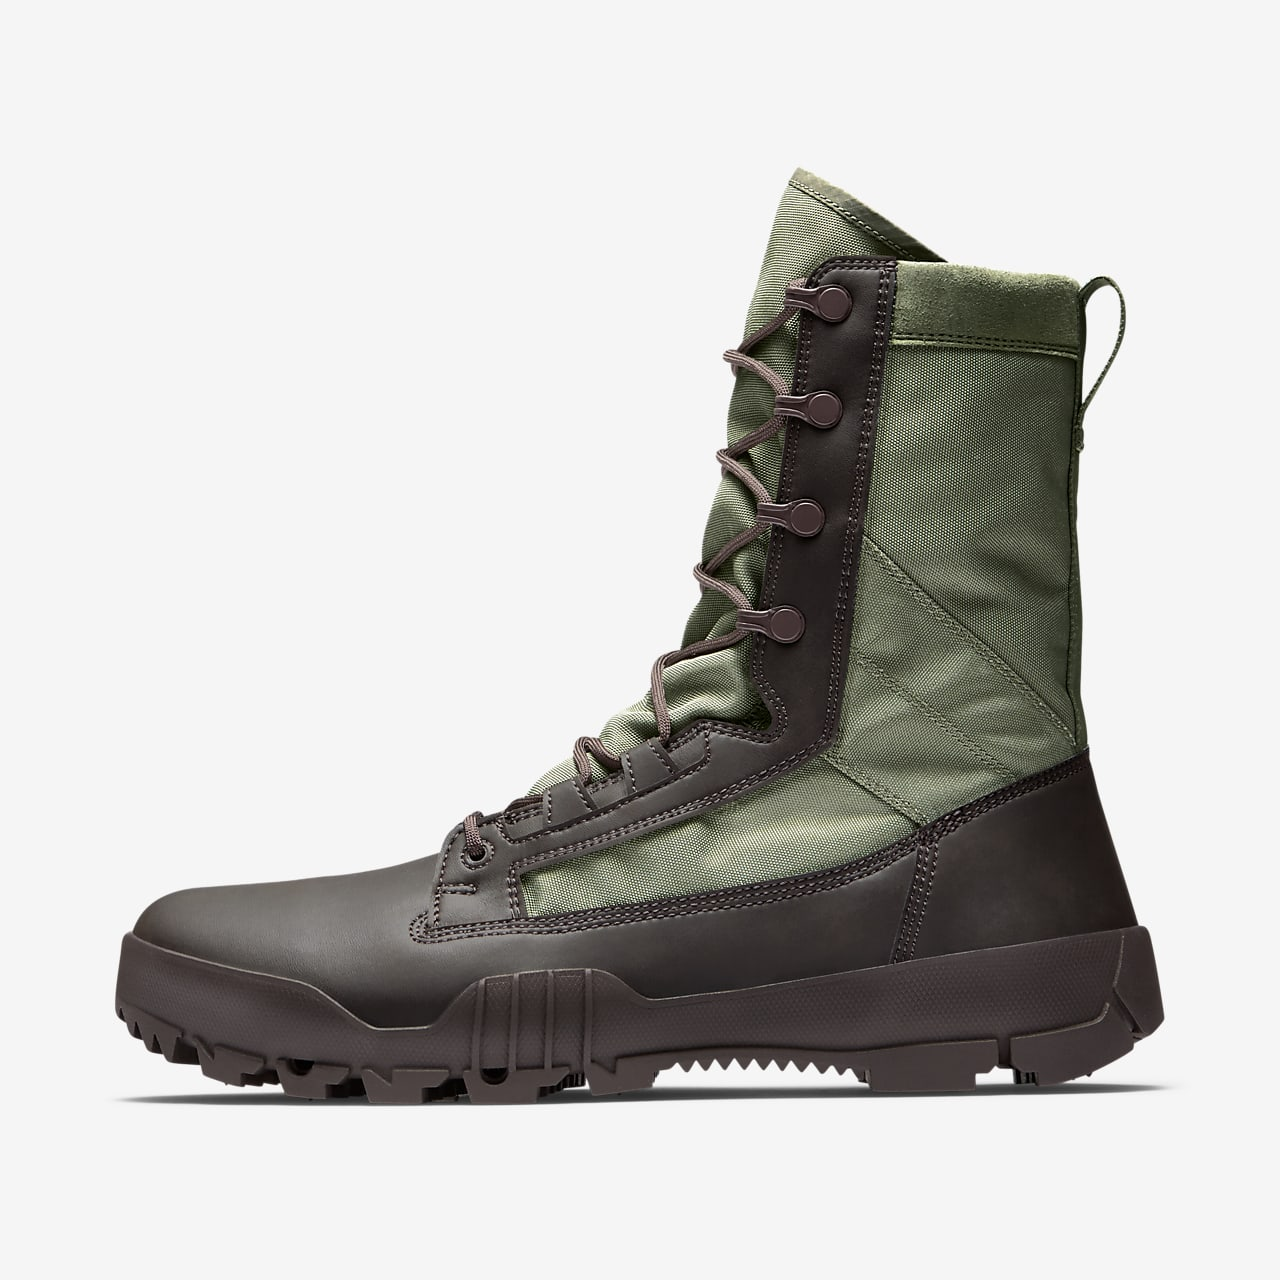 Nike SFB Jungle Tactical Boot